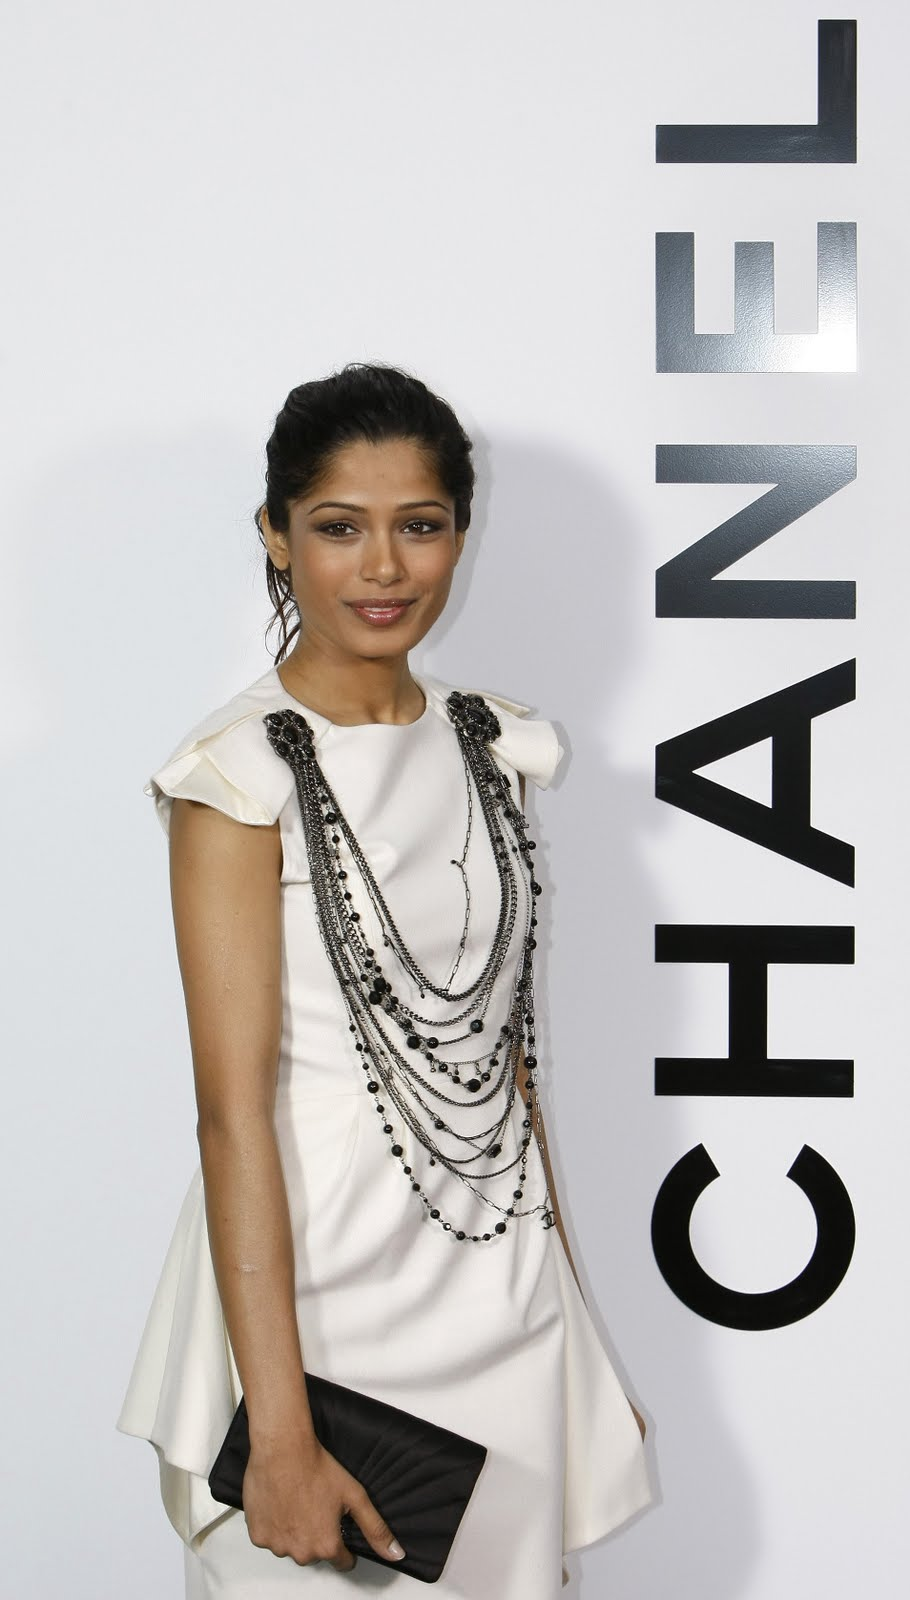 freida pinto sexy candid photo 01